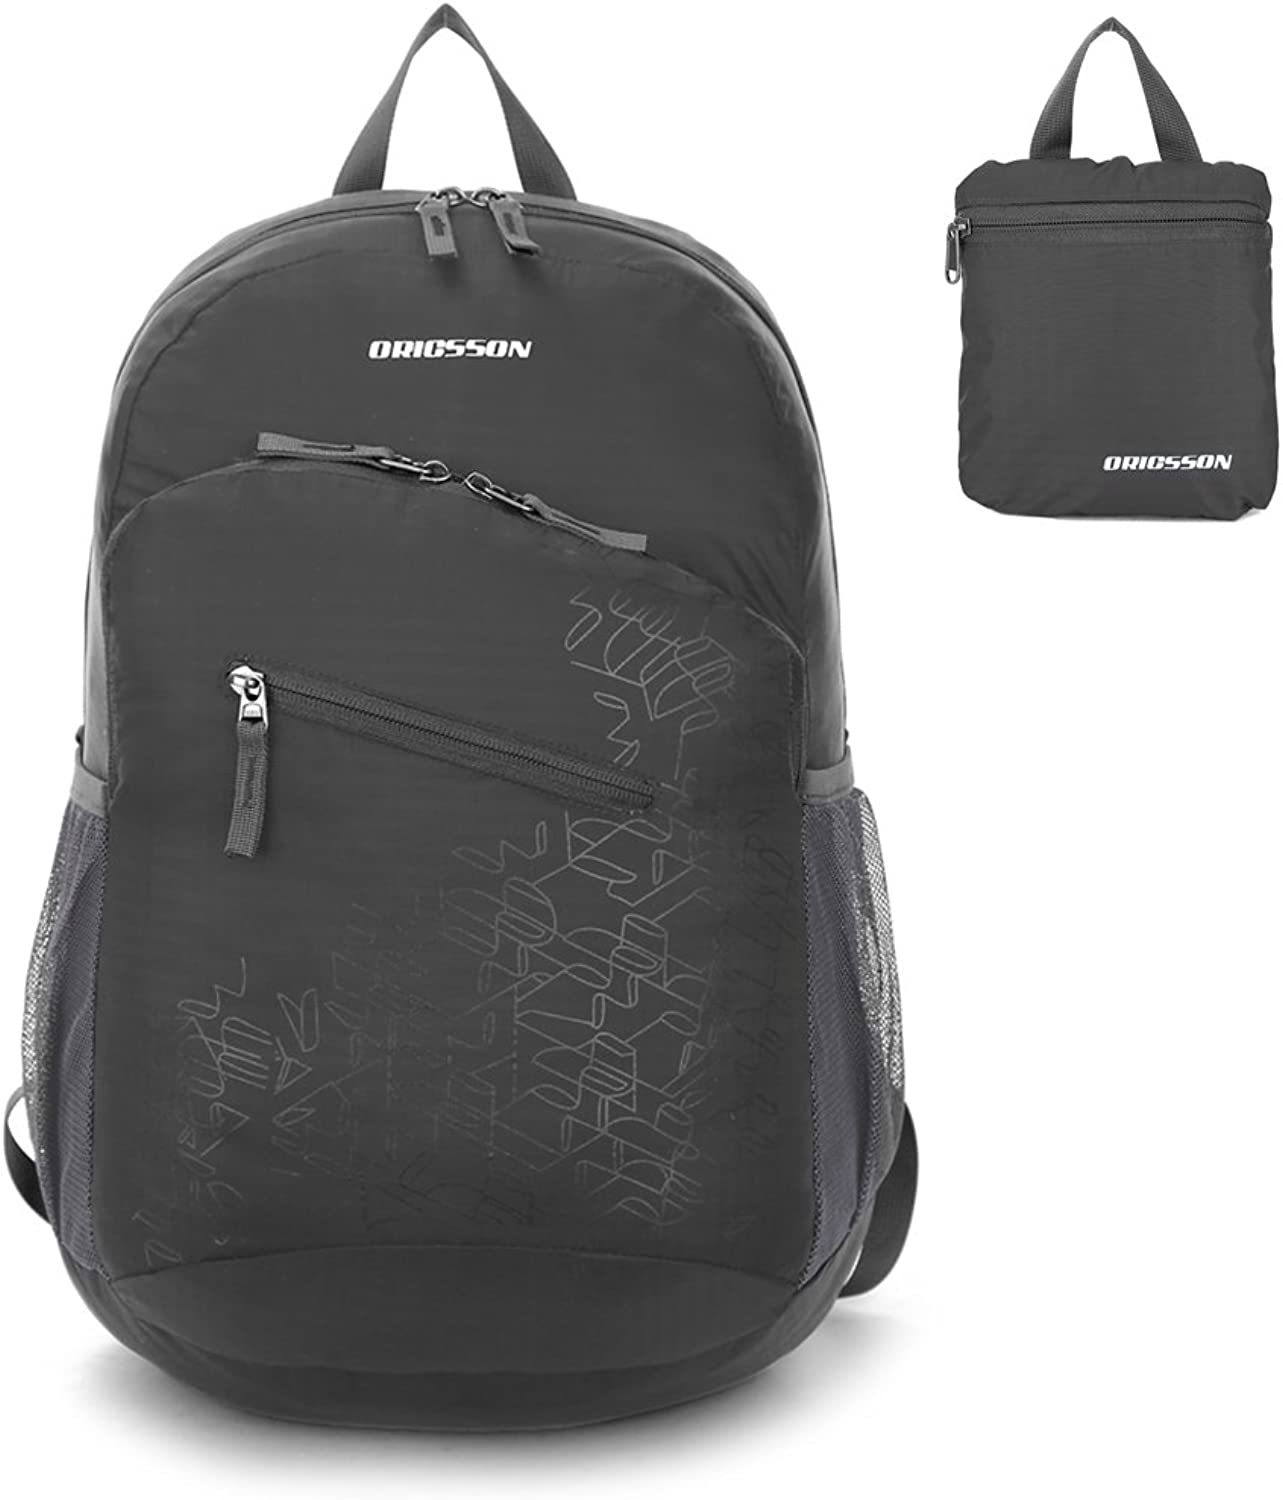 ORICSSON Travel Sports Lightweight Water Resistant Durable Foldable Backpack Daypack 33L 20L